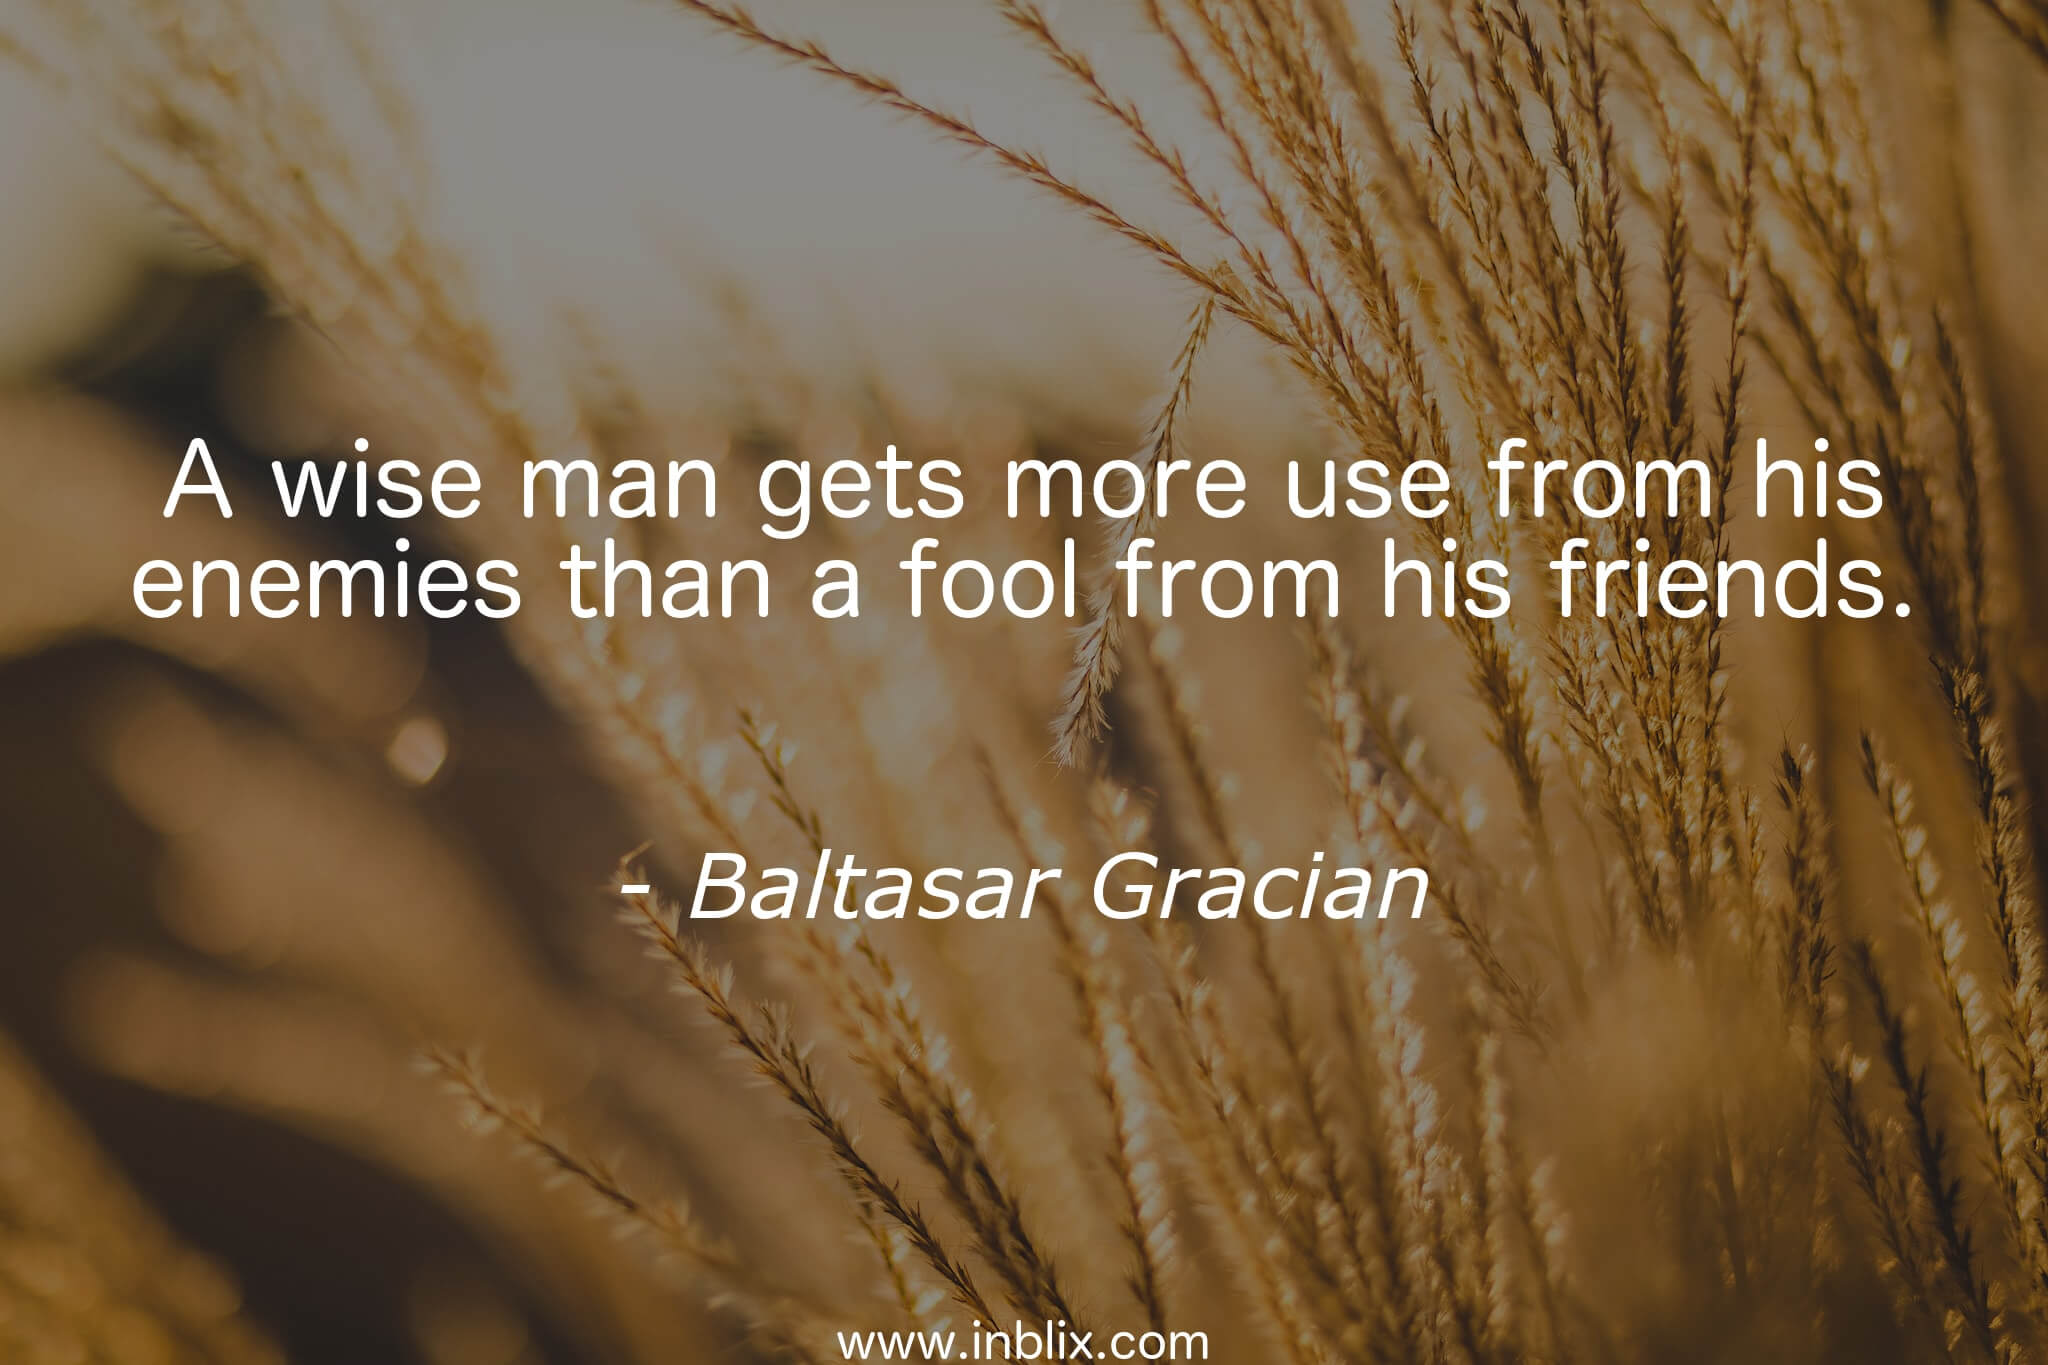 A wise man gets more use from his enemies than a fool from his friends.